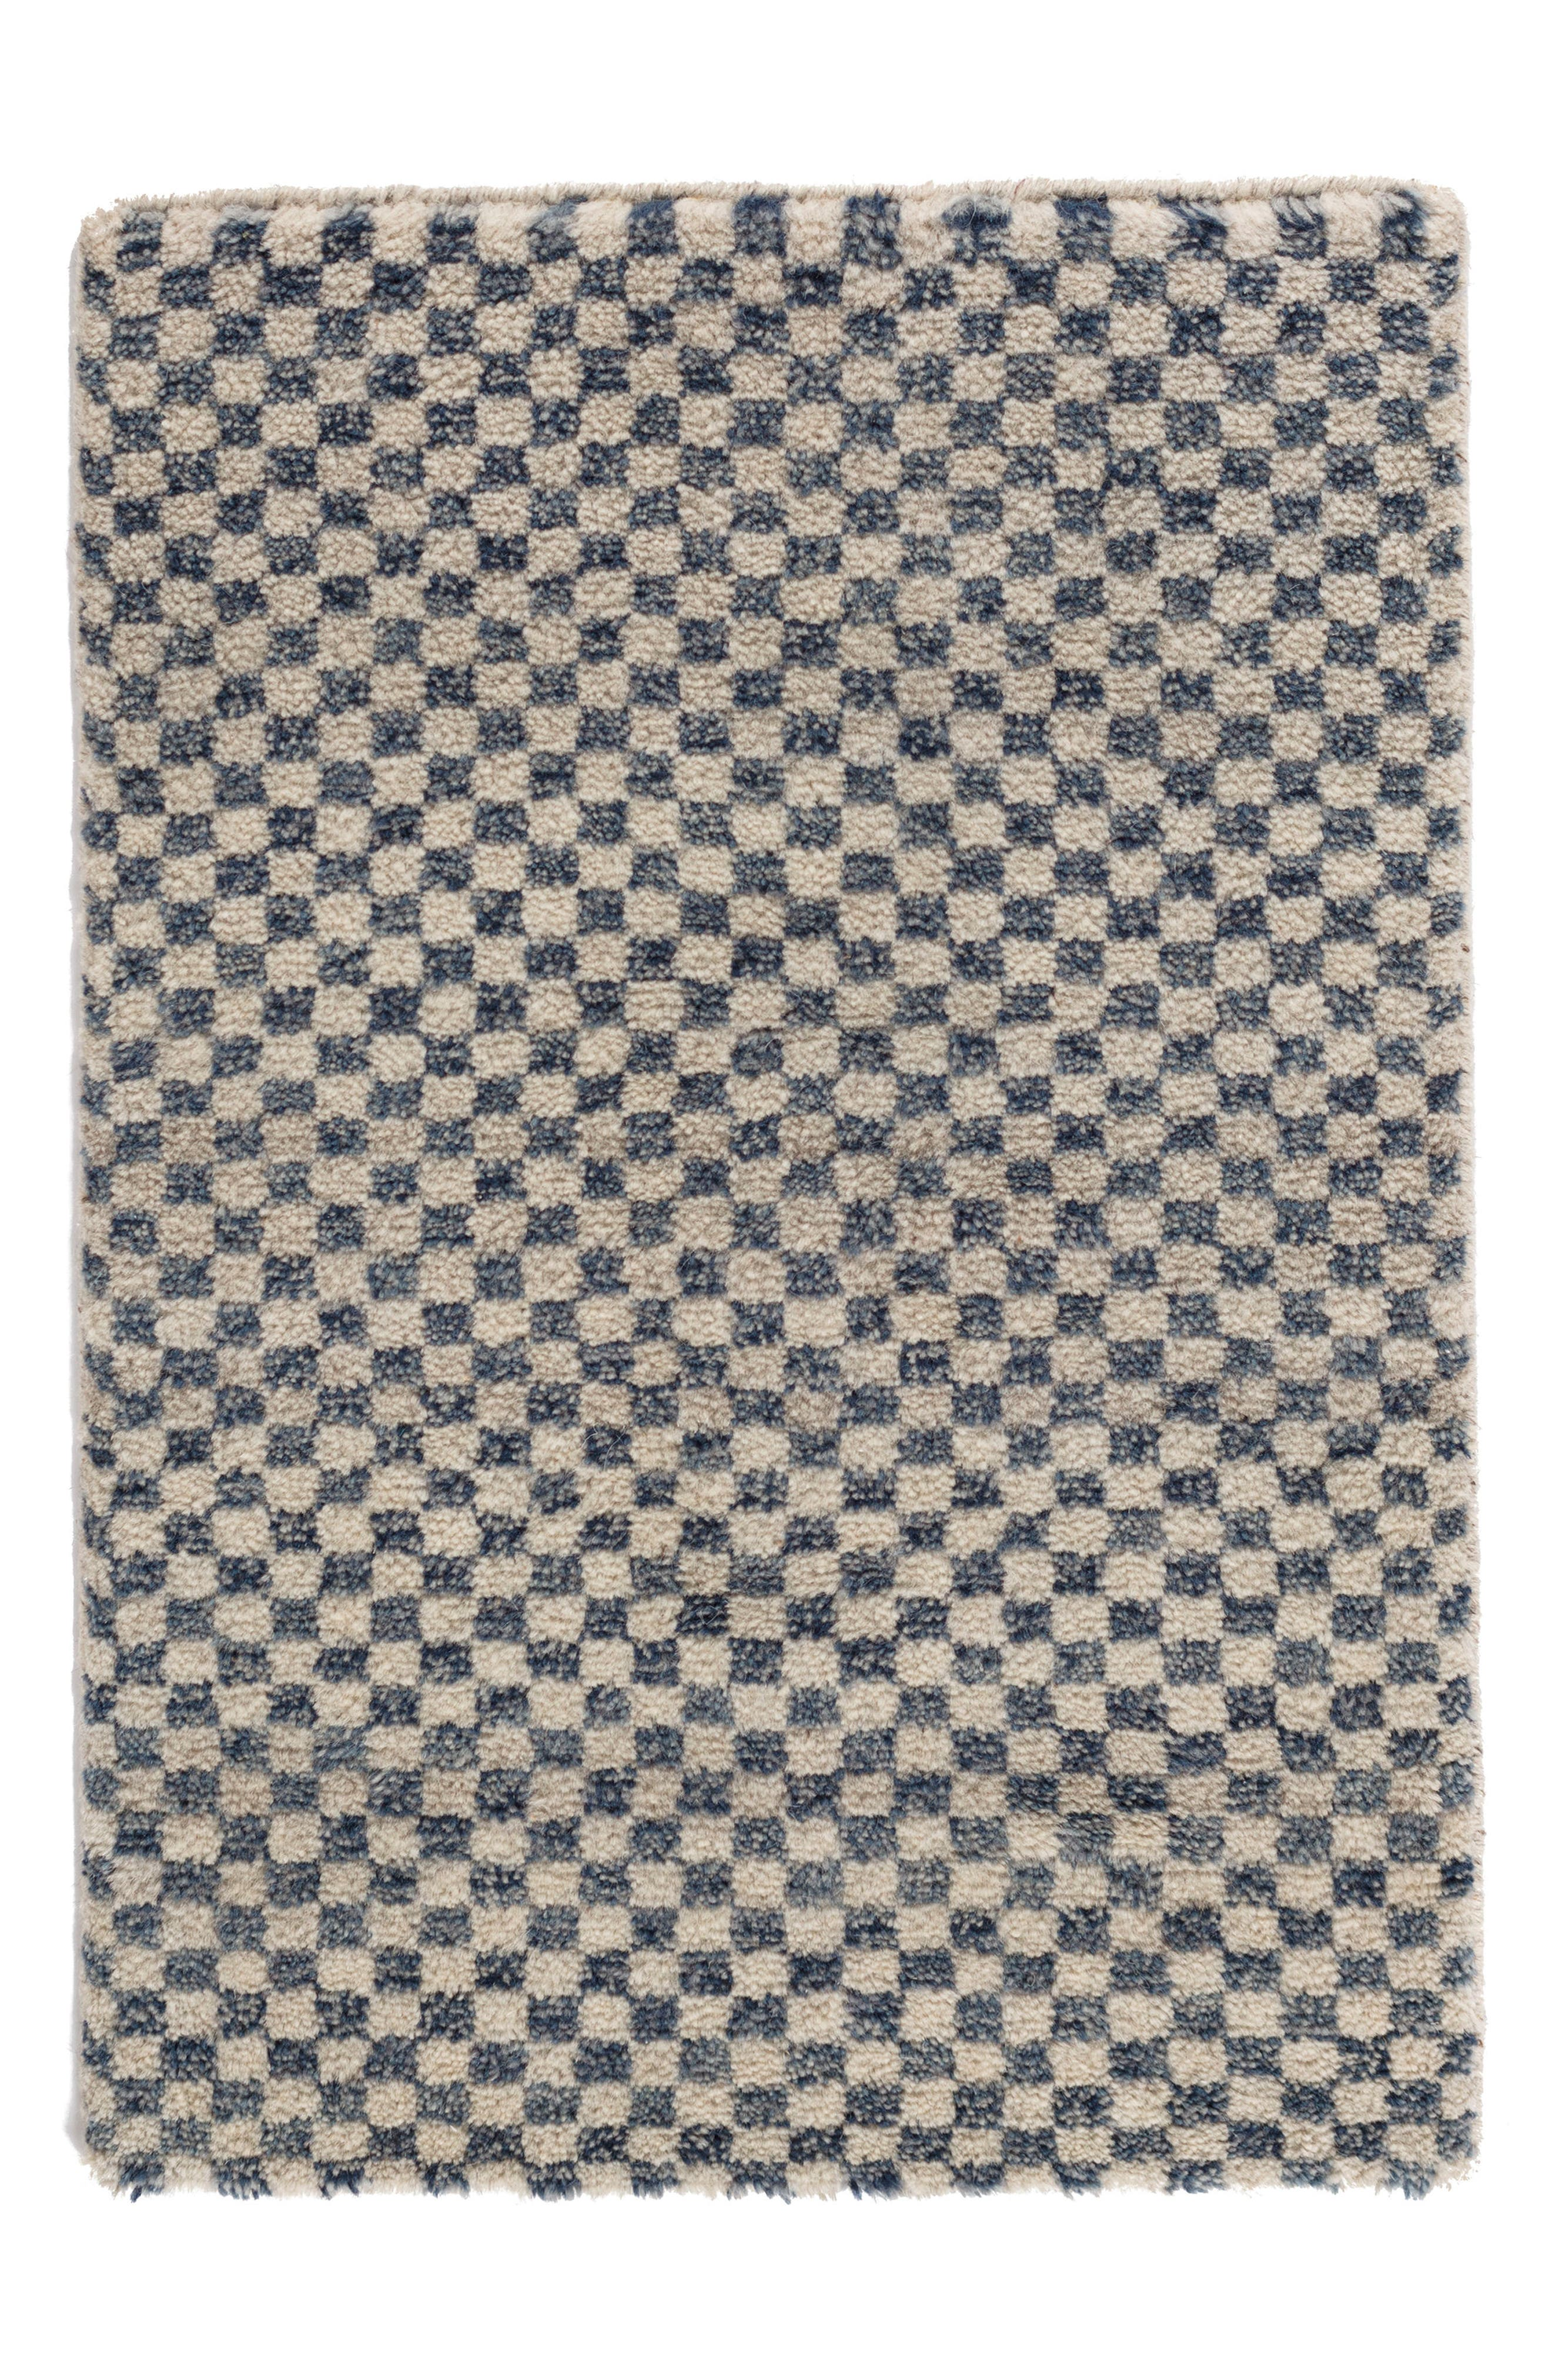 Citra Hand Knotted Rug,                             Alternate thumbnail 2, color,                             Denim